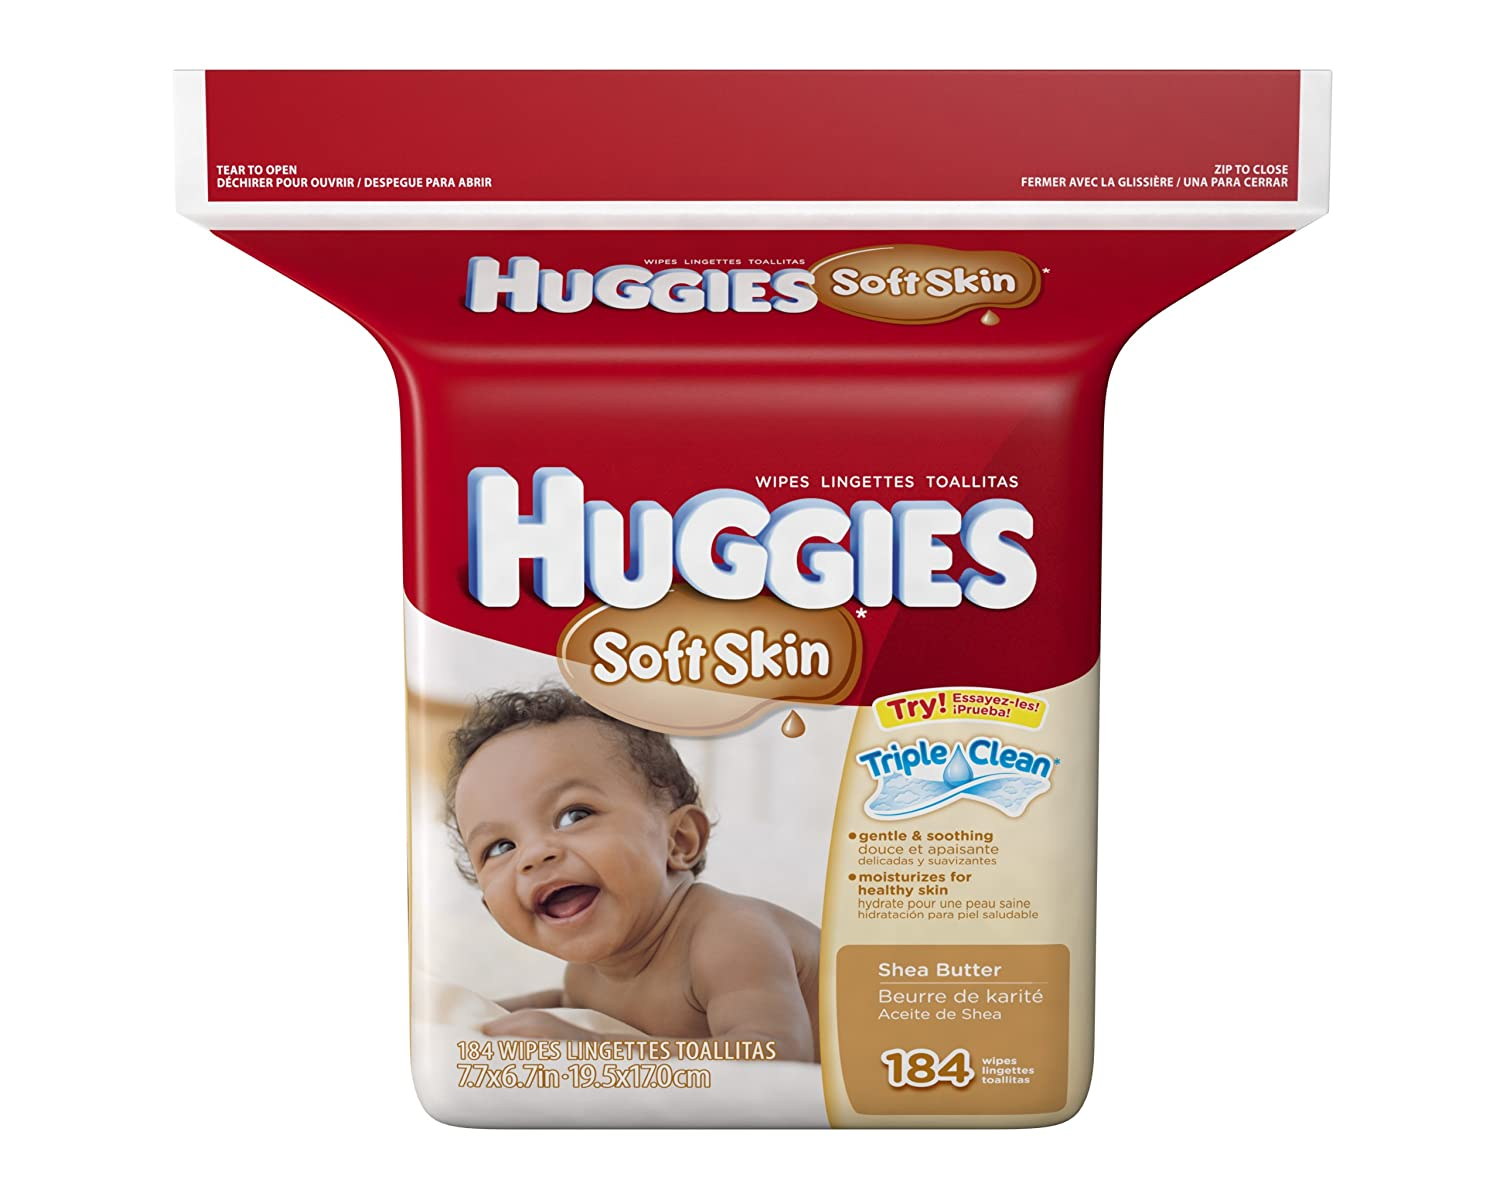 Amazon.com: Huggies Soft Skin Baby Refill Wipes, 184 count: Health & Personal Care